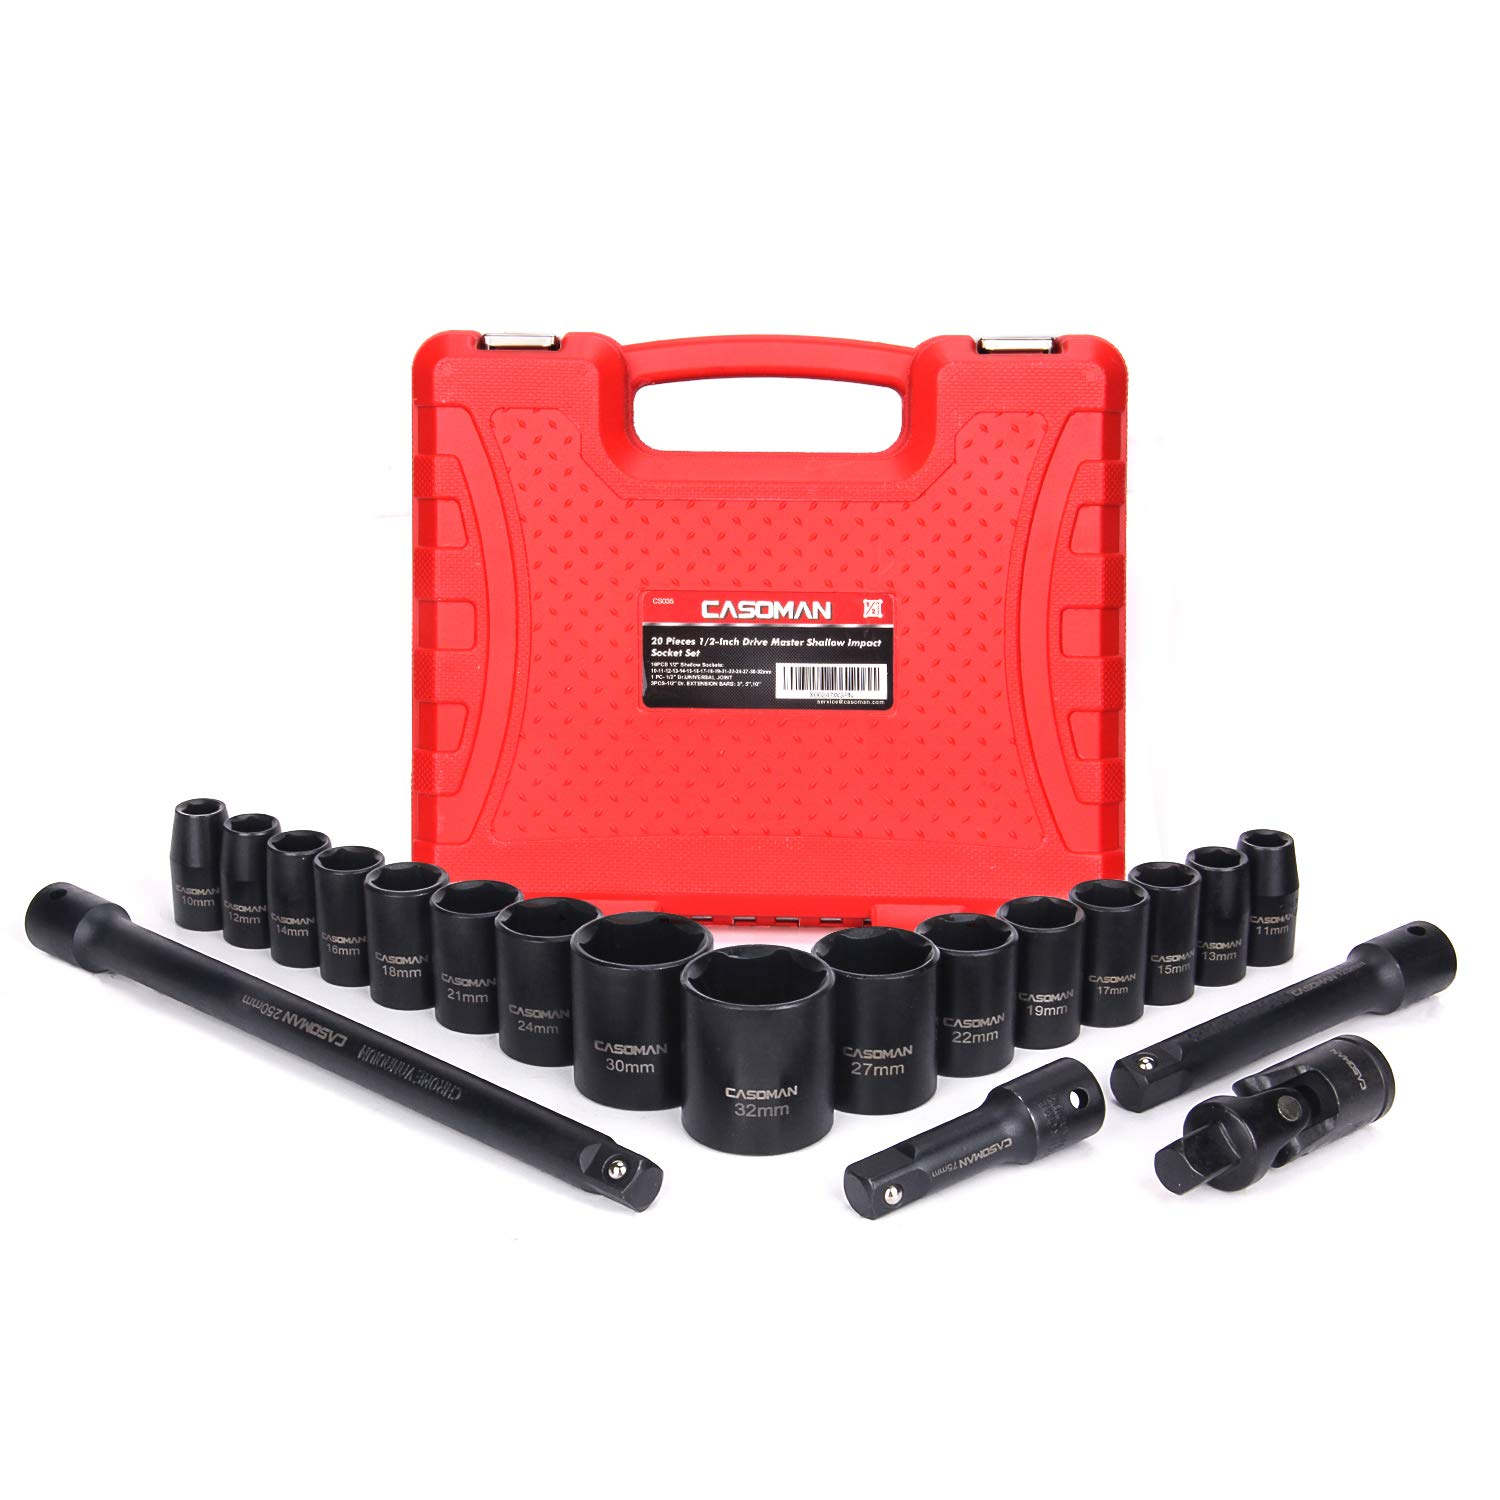 CASOMAN 1/2-Inch Drive Shallow Impact Socket Set, Metric, 10mm-32mm, CR-V, 6-Point, 20-Piece 1/2'' Shallow Sockets Set with Extension Bar and Universal Joints by CASOMAN